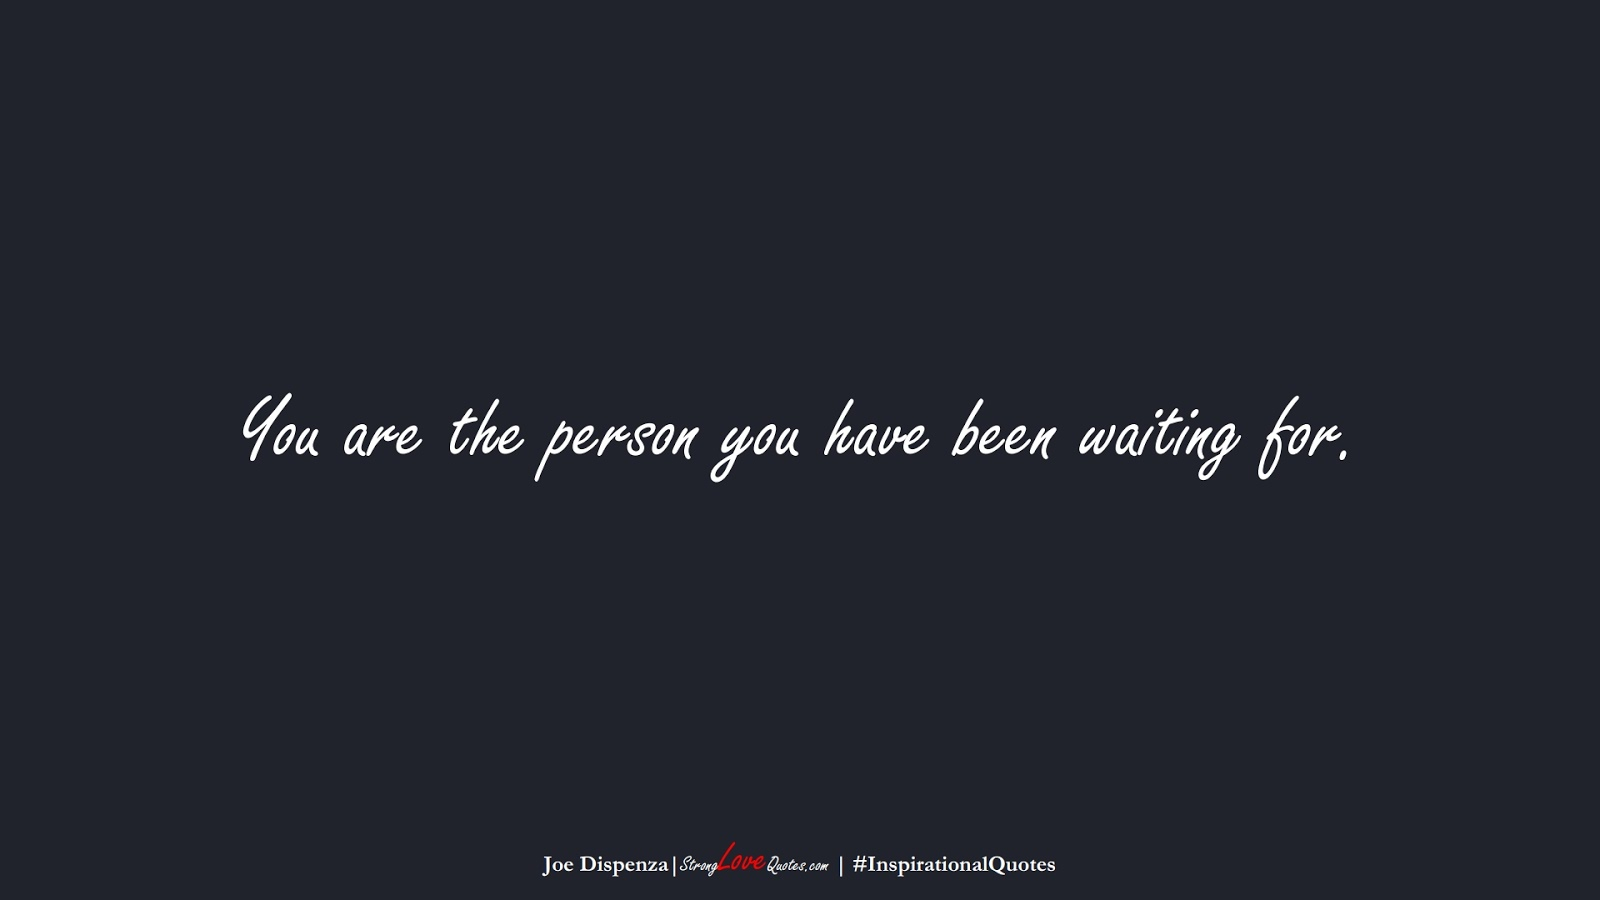 You are the person you have been waiting for. (Joe Dispenza);  #InspirationalQuotes